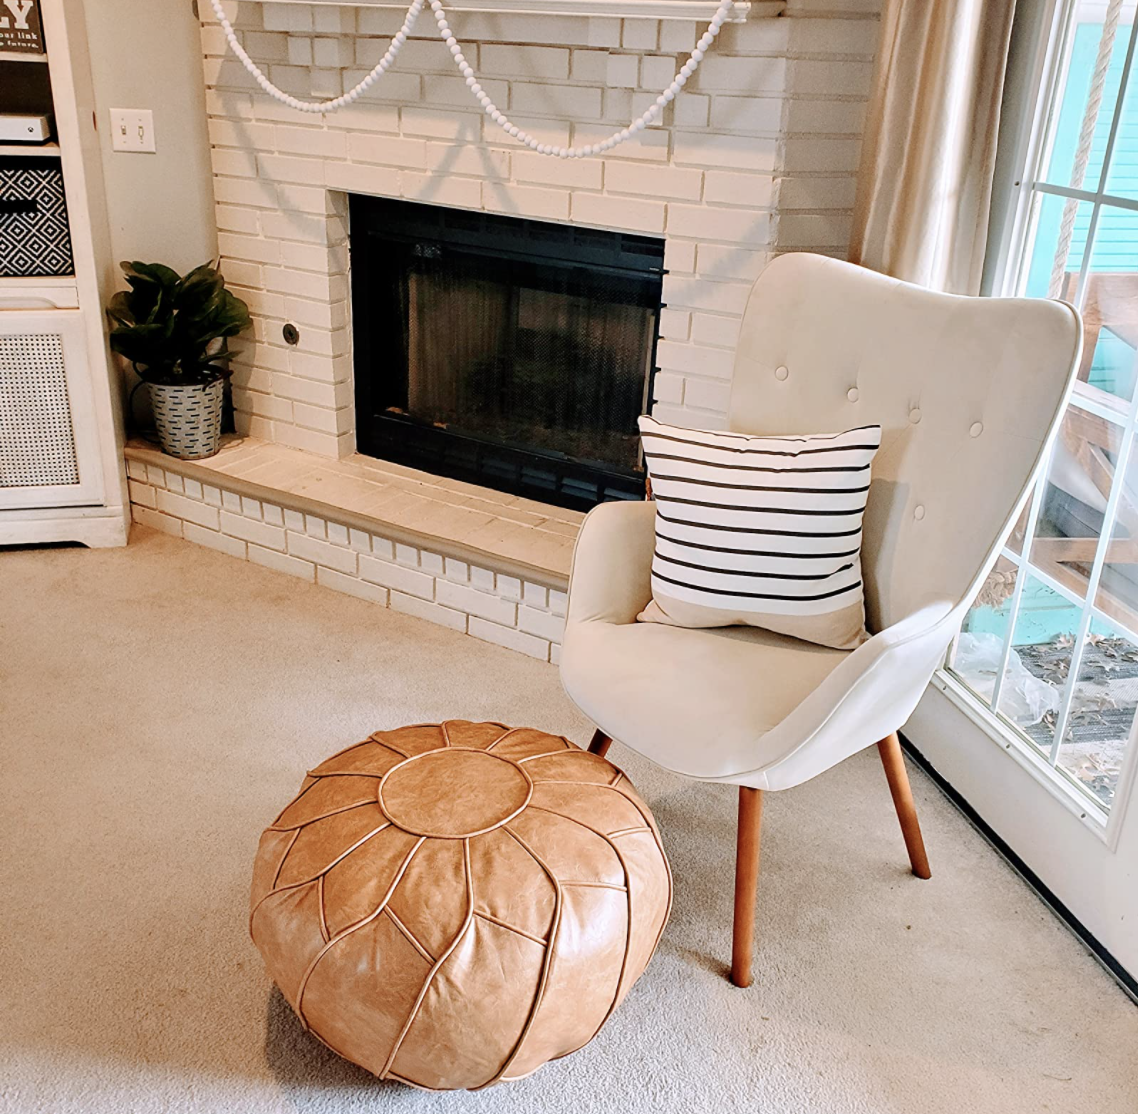 Reviewer's light brown leather pouf is styled in a room.